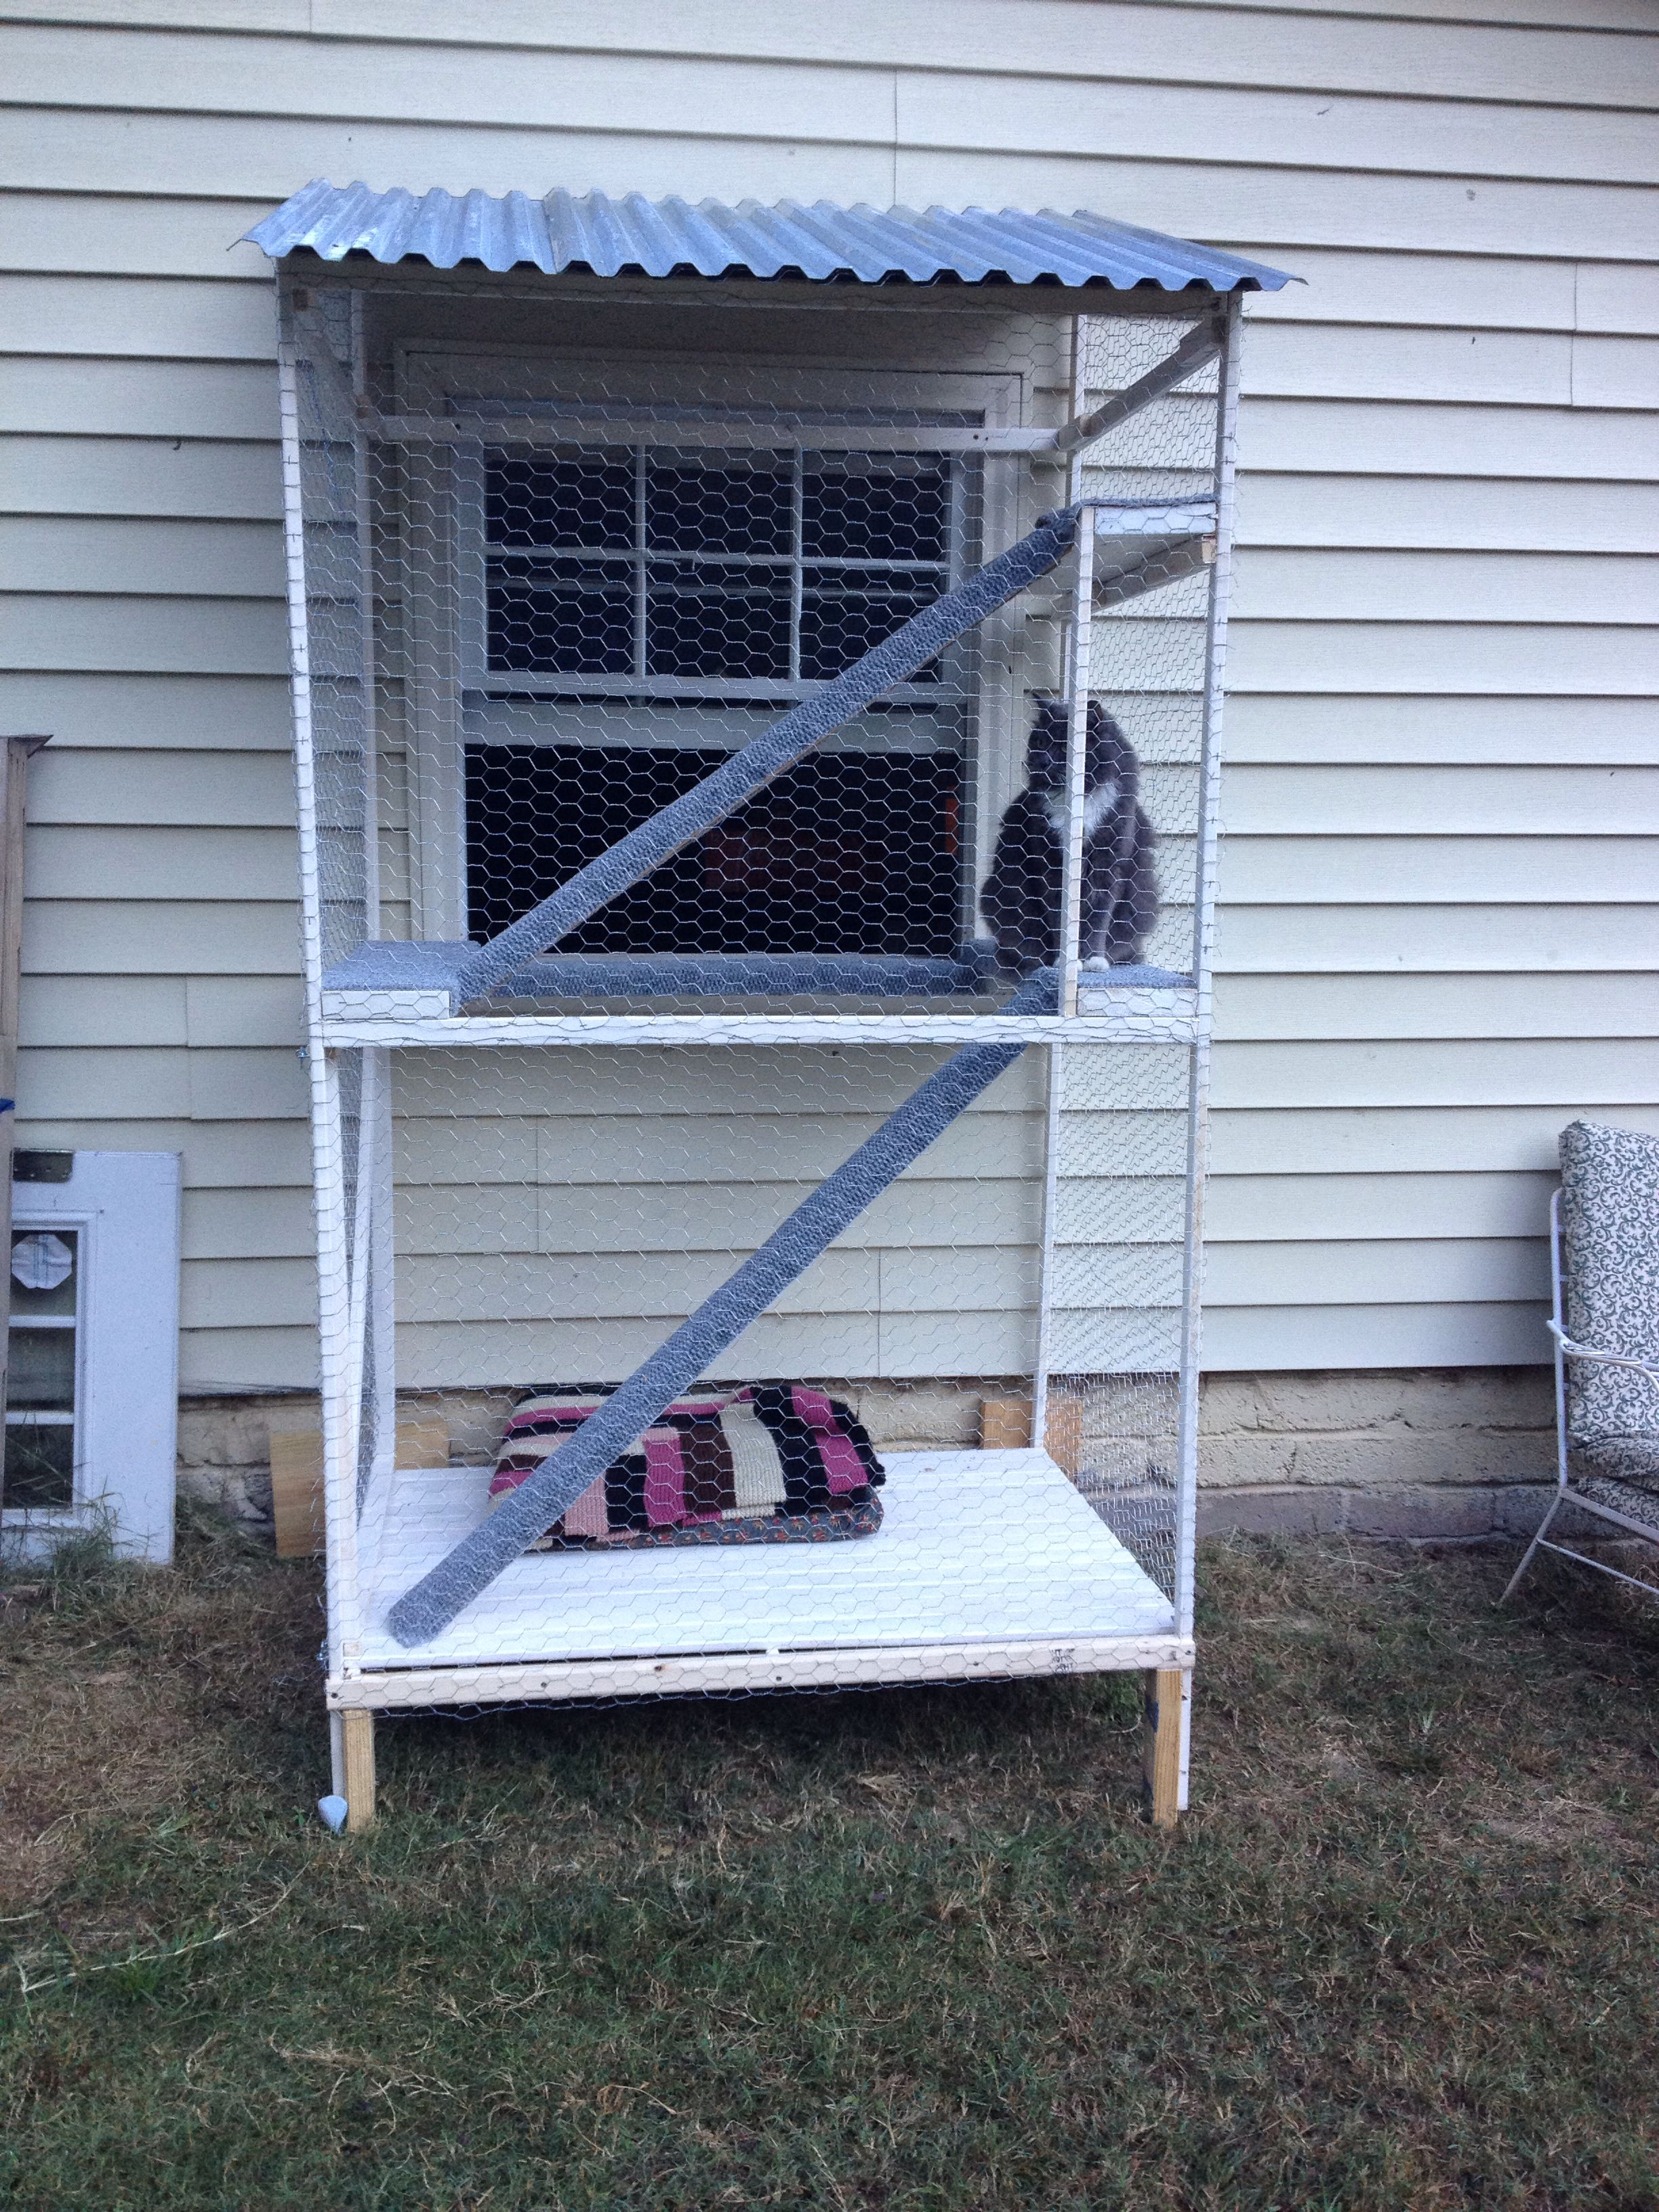 Our Catio. A safe outdoor inclosure for indoor cats. My